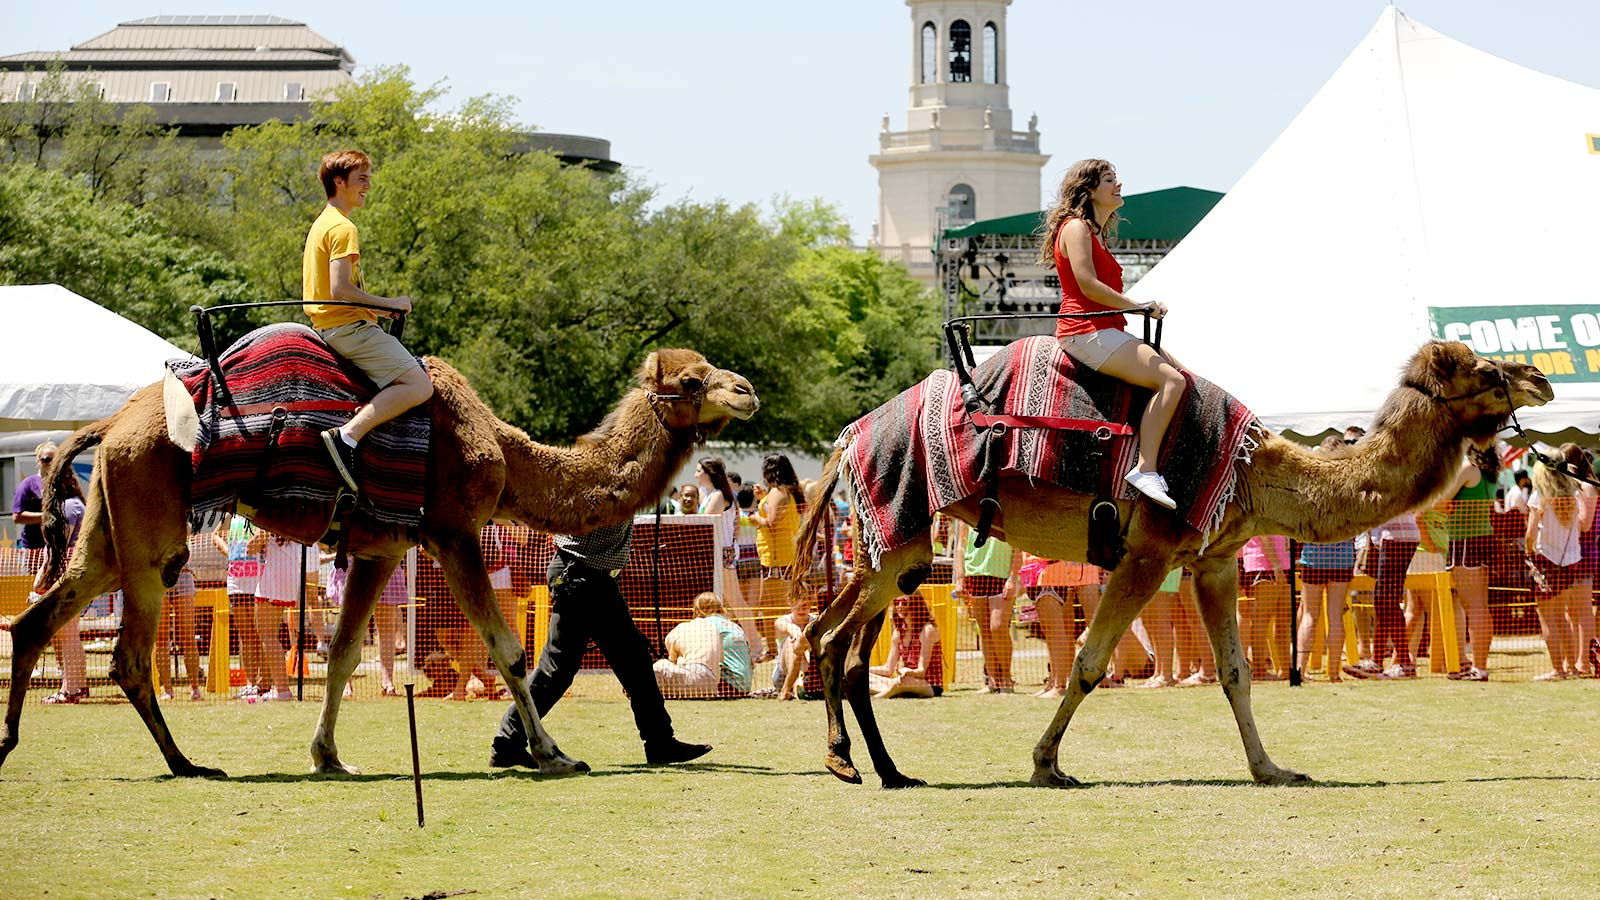 Concerts, games, competitions, and even camels highlight the annual Day of the Bear festivities.